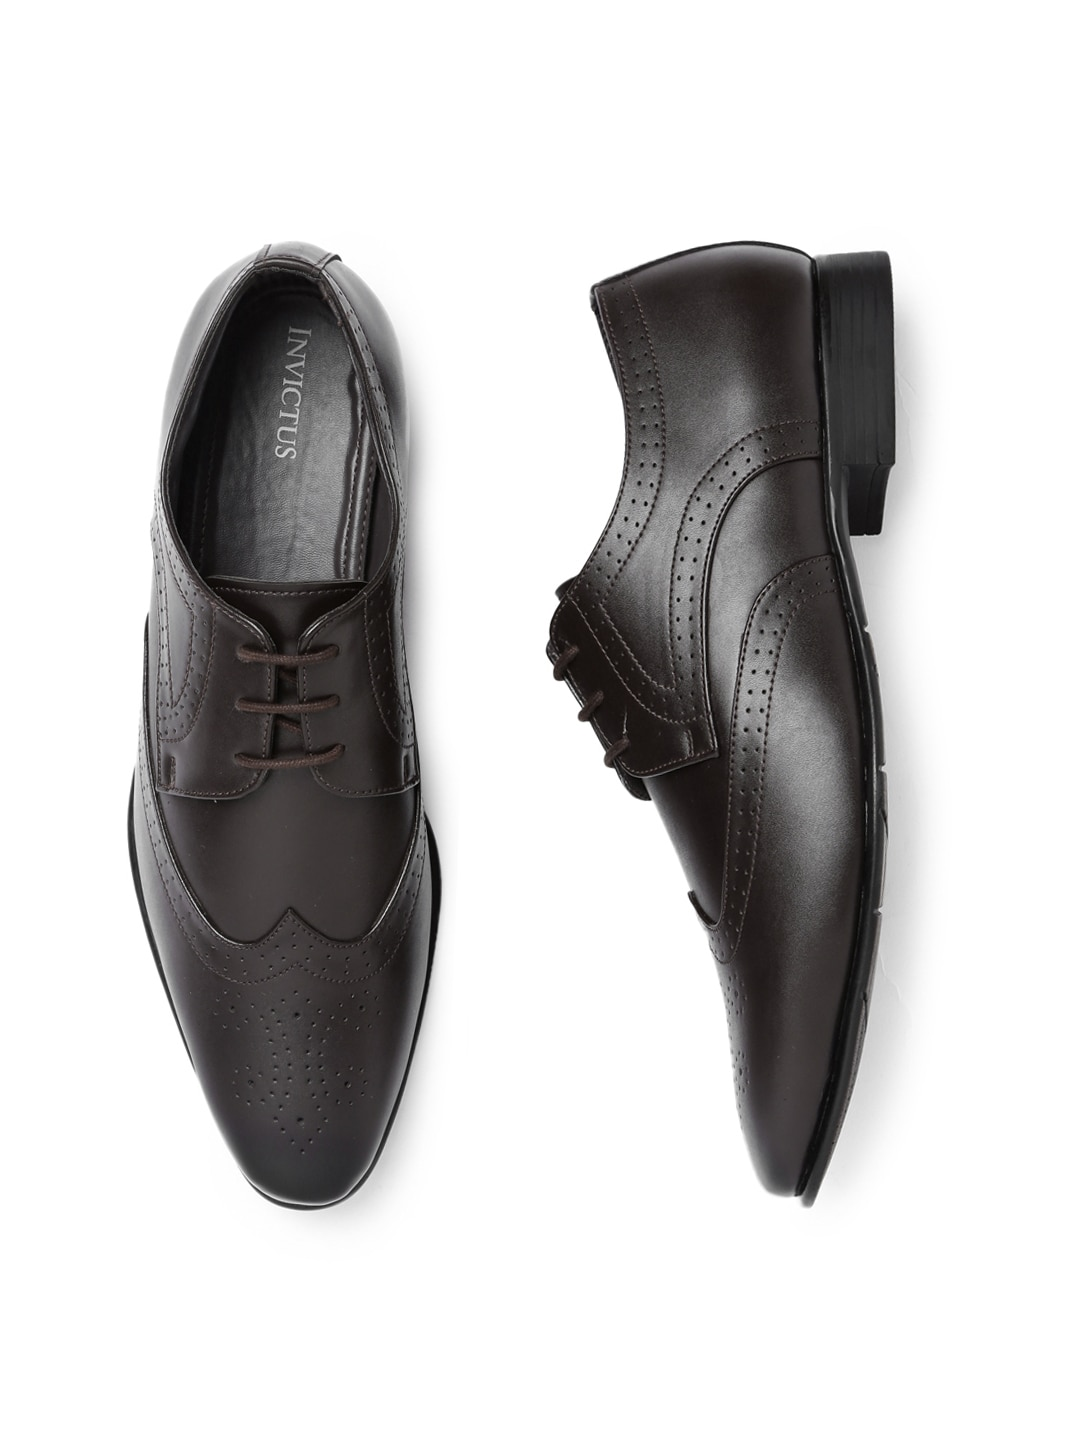 a792a3a8dff6 Shoes - Buy Shoes for Men